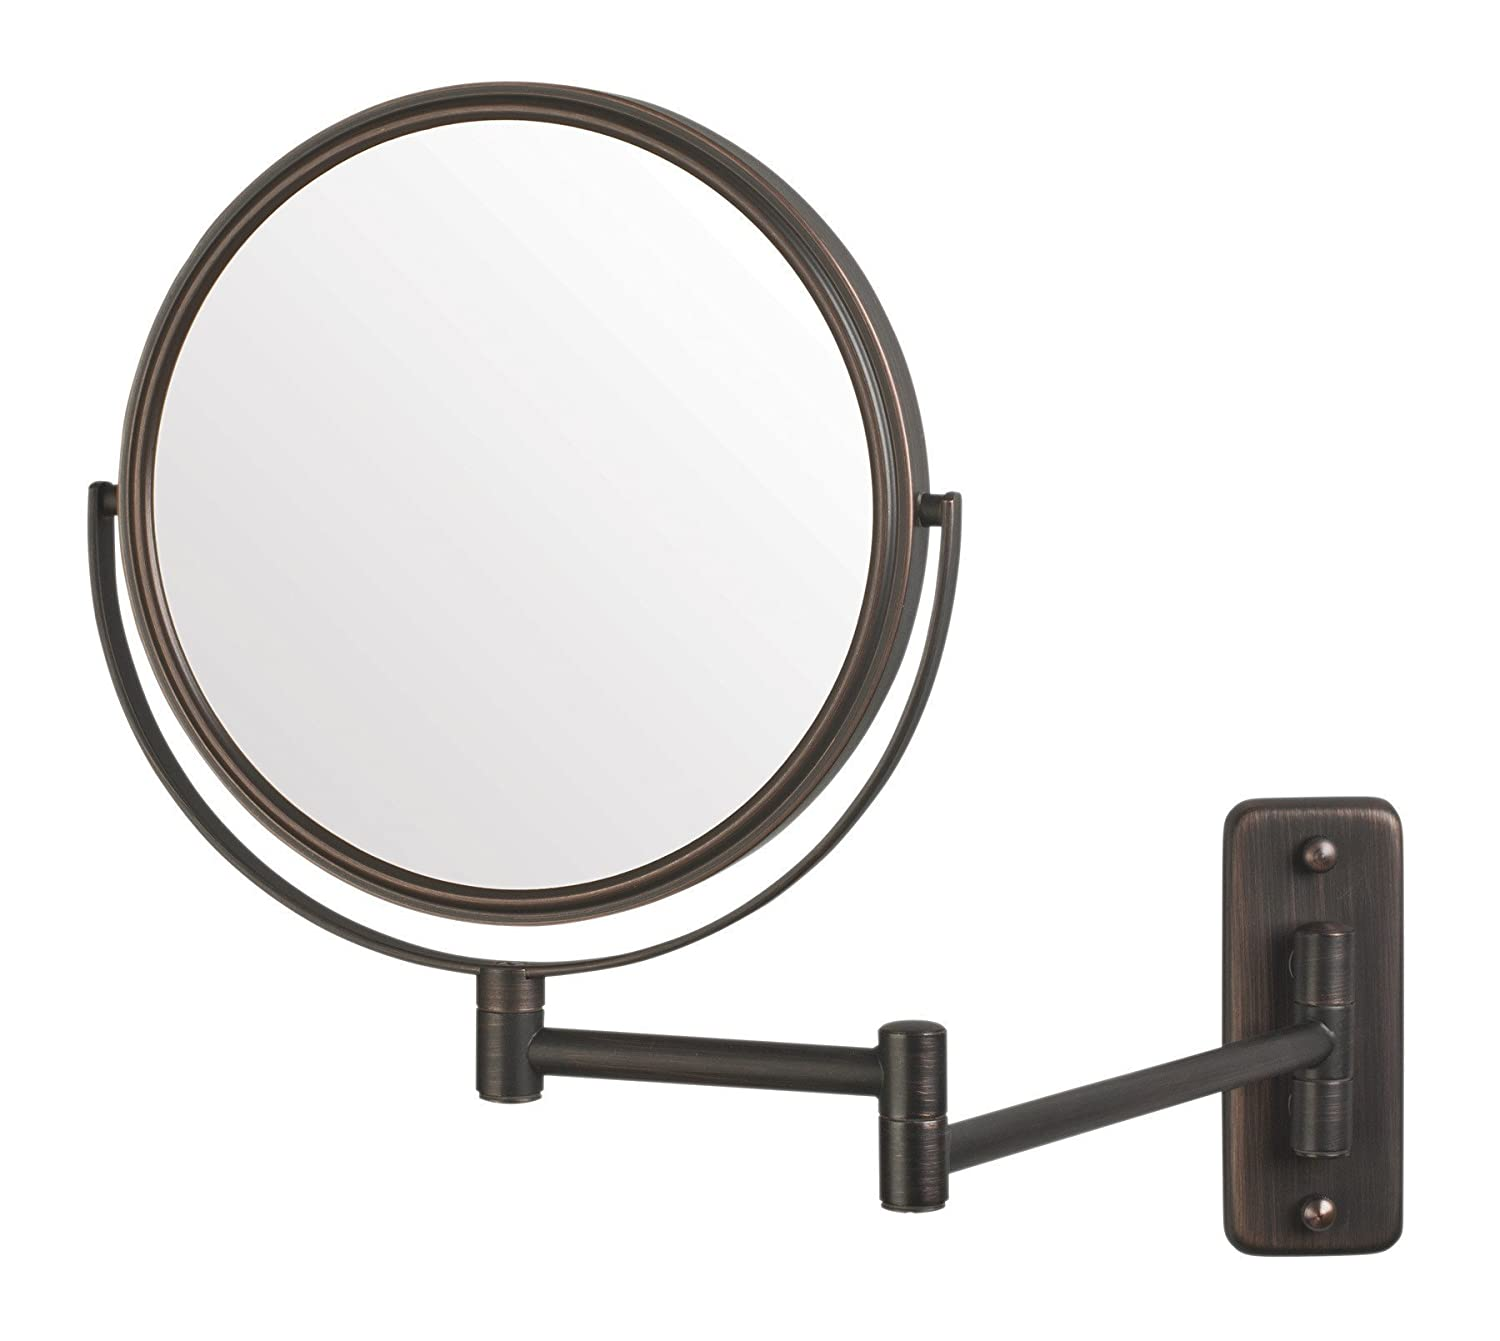 Jerdon jp7506n 8 inch two sided swivel wall mount mirror with 5x jerdon jp7506n 8 inch two sided swivel wall mount mirror with 5x magnification 135 inch extension matte nickel finish amazon beauty amipublicfo Choice Image